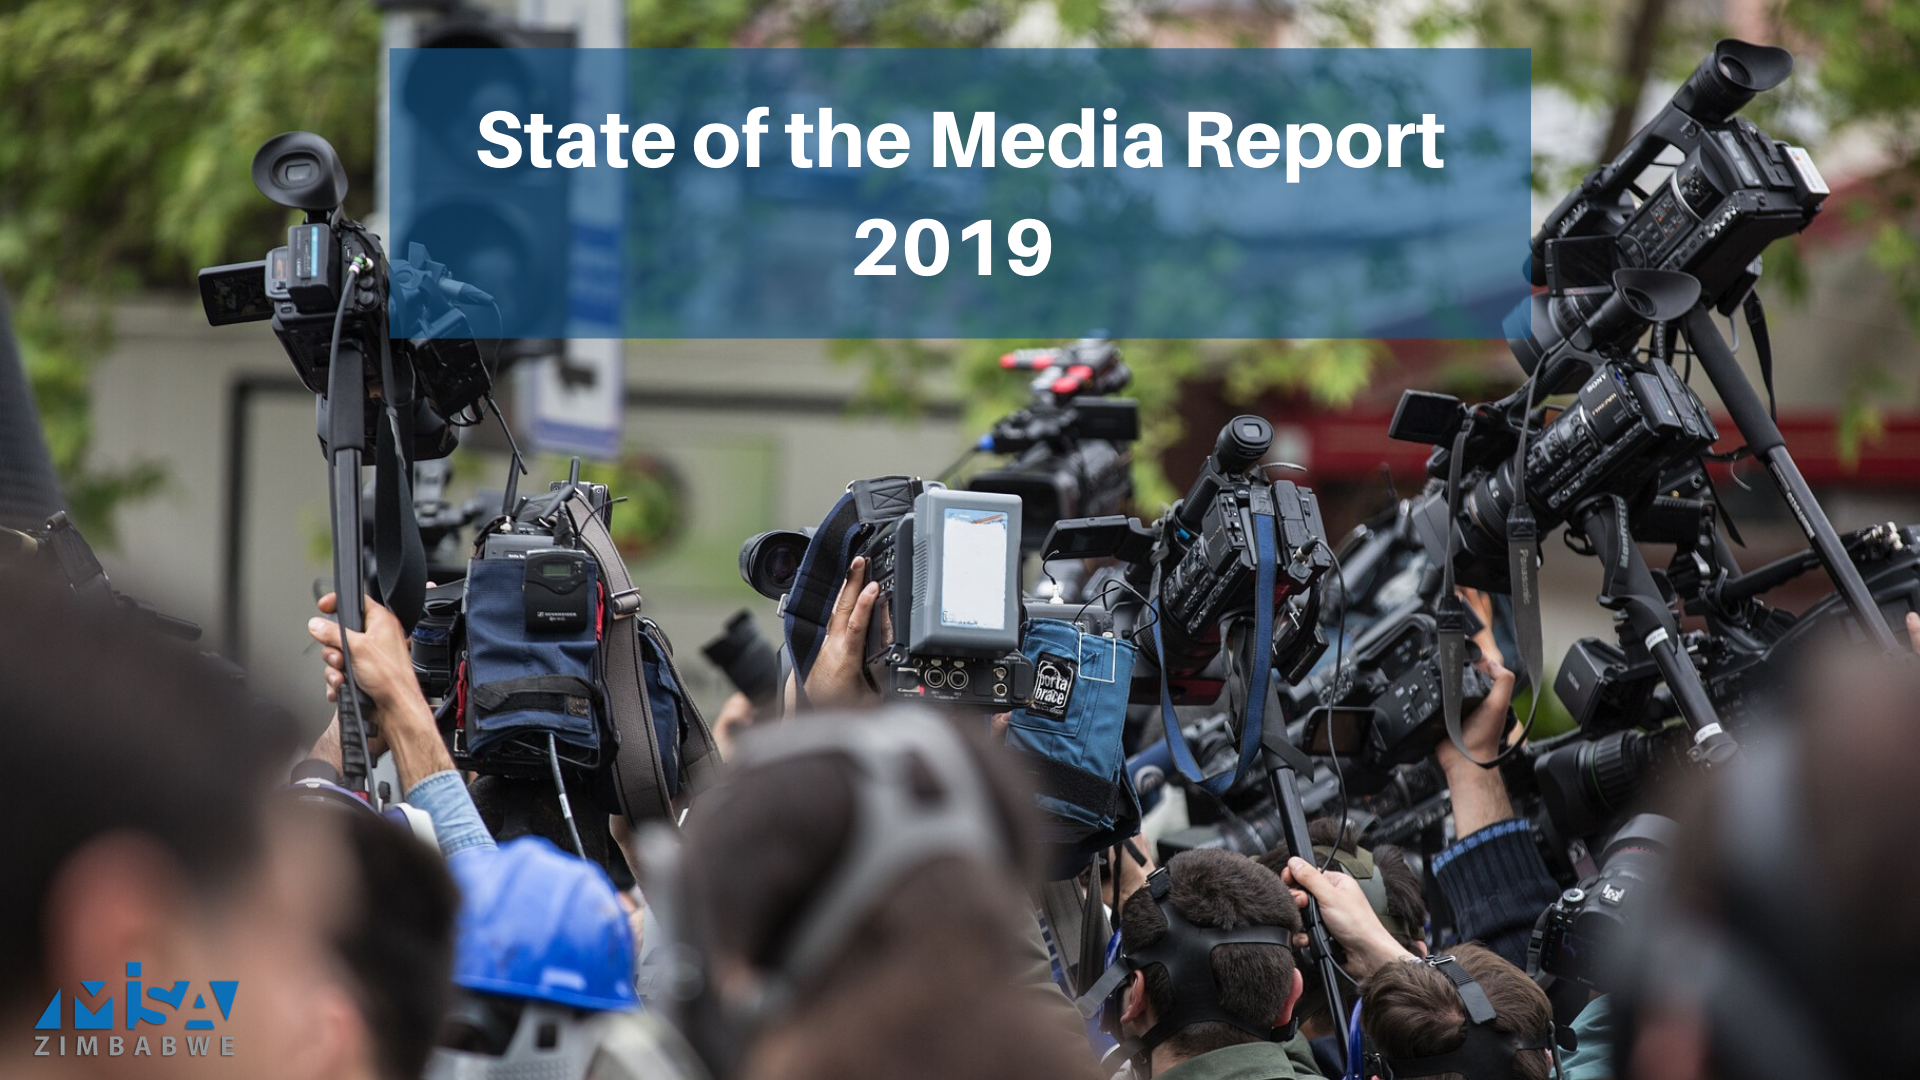 State of the media report 2019 available now!